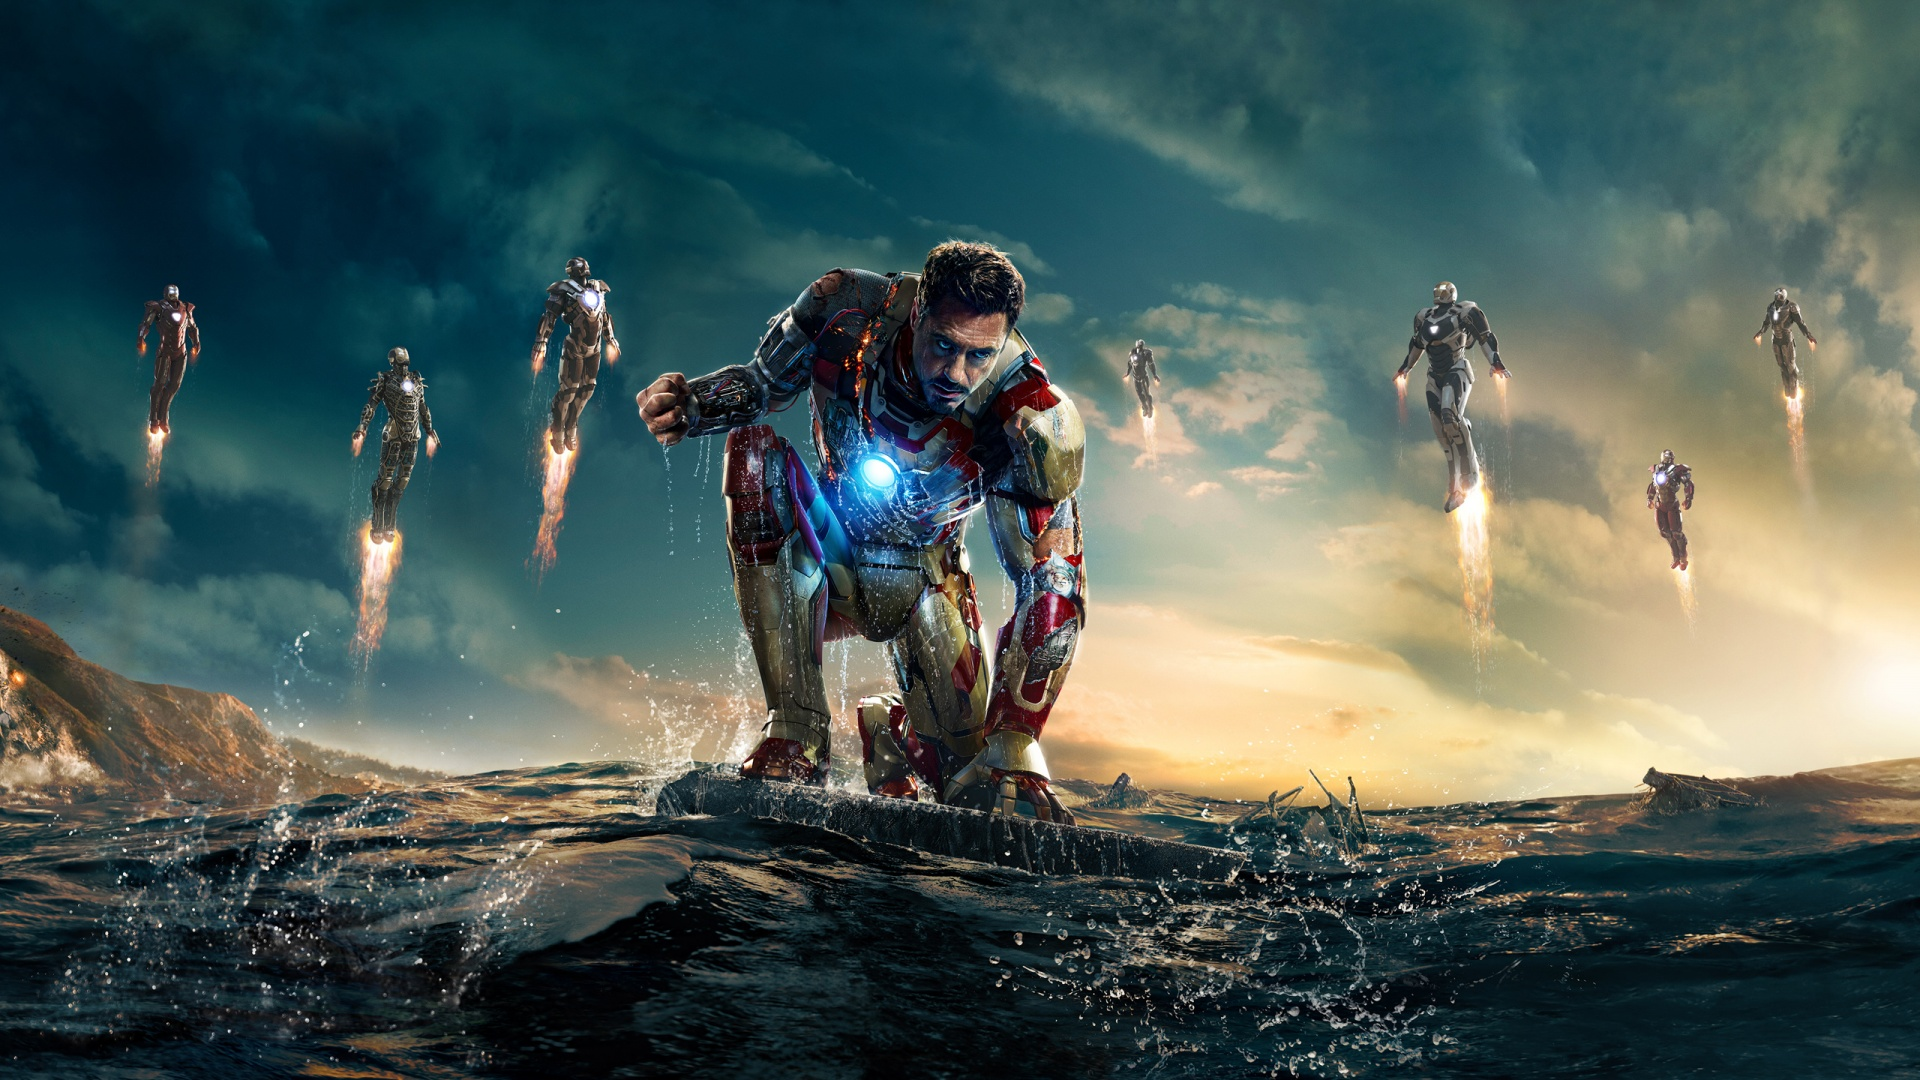 Top 10 HD Iron Man Wallpapers for iPhone 55s 1920x1080